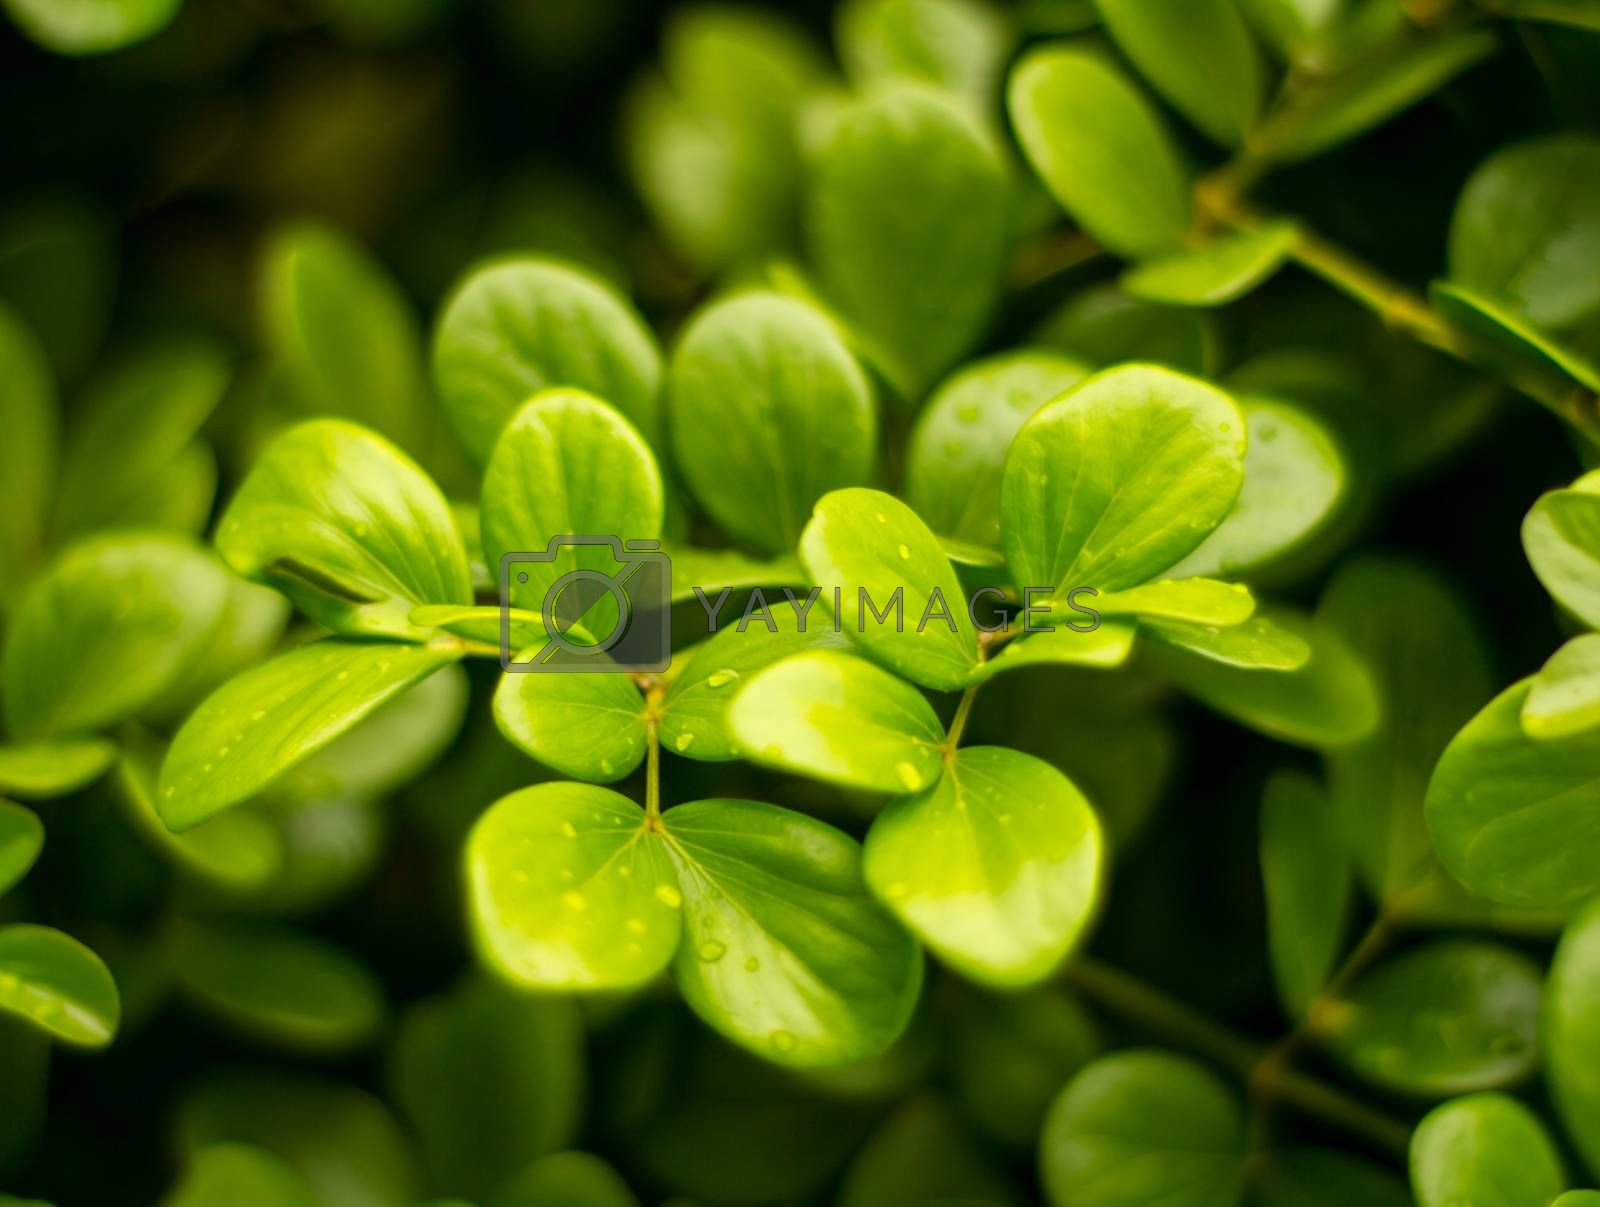 Royalty free image of Branch leaves by liewluck